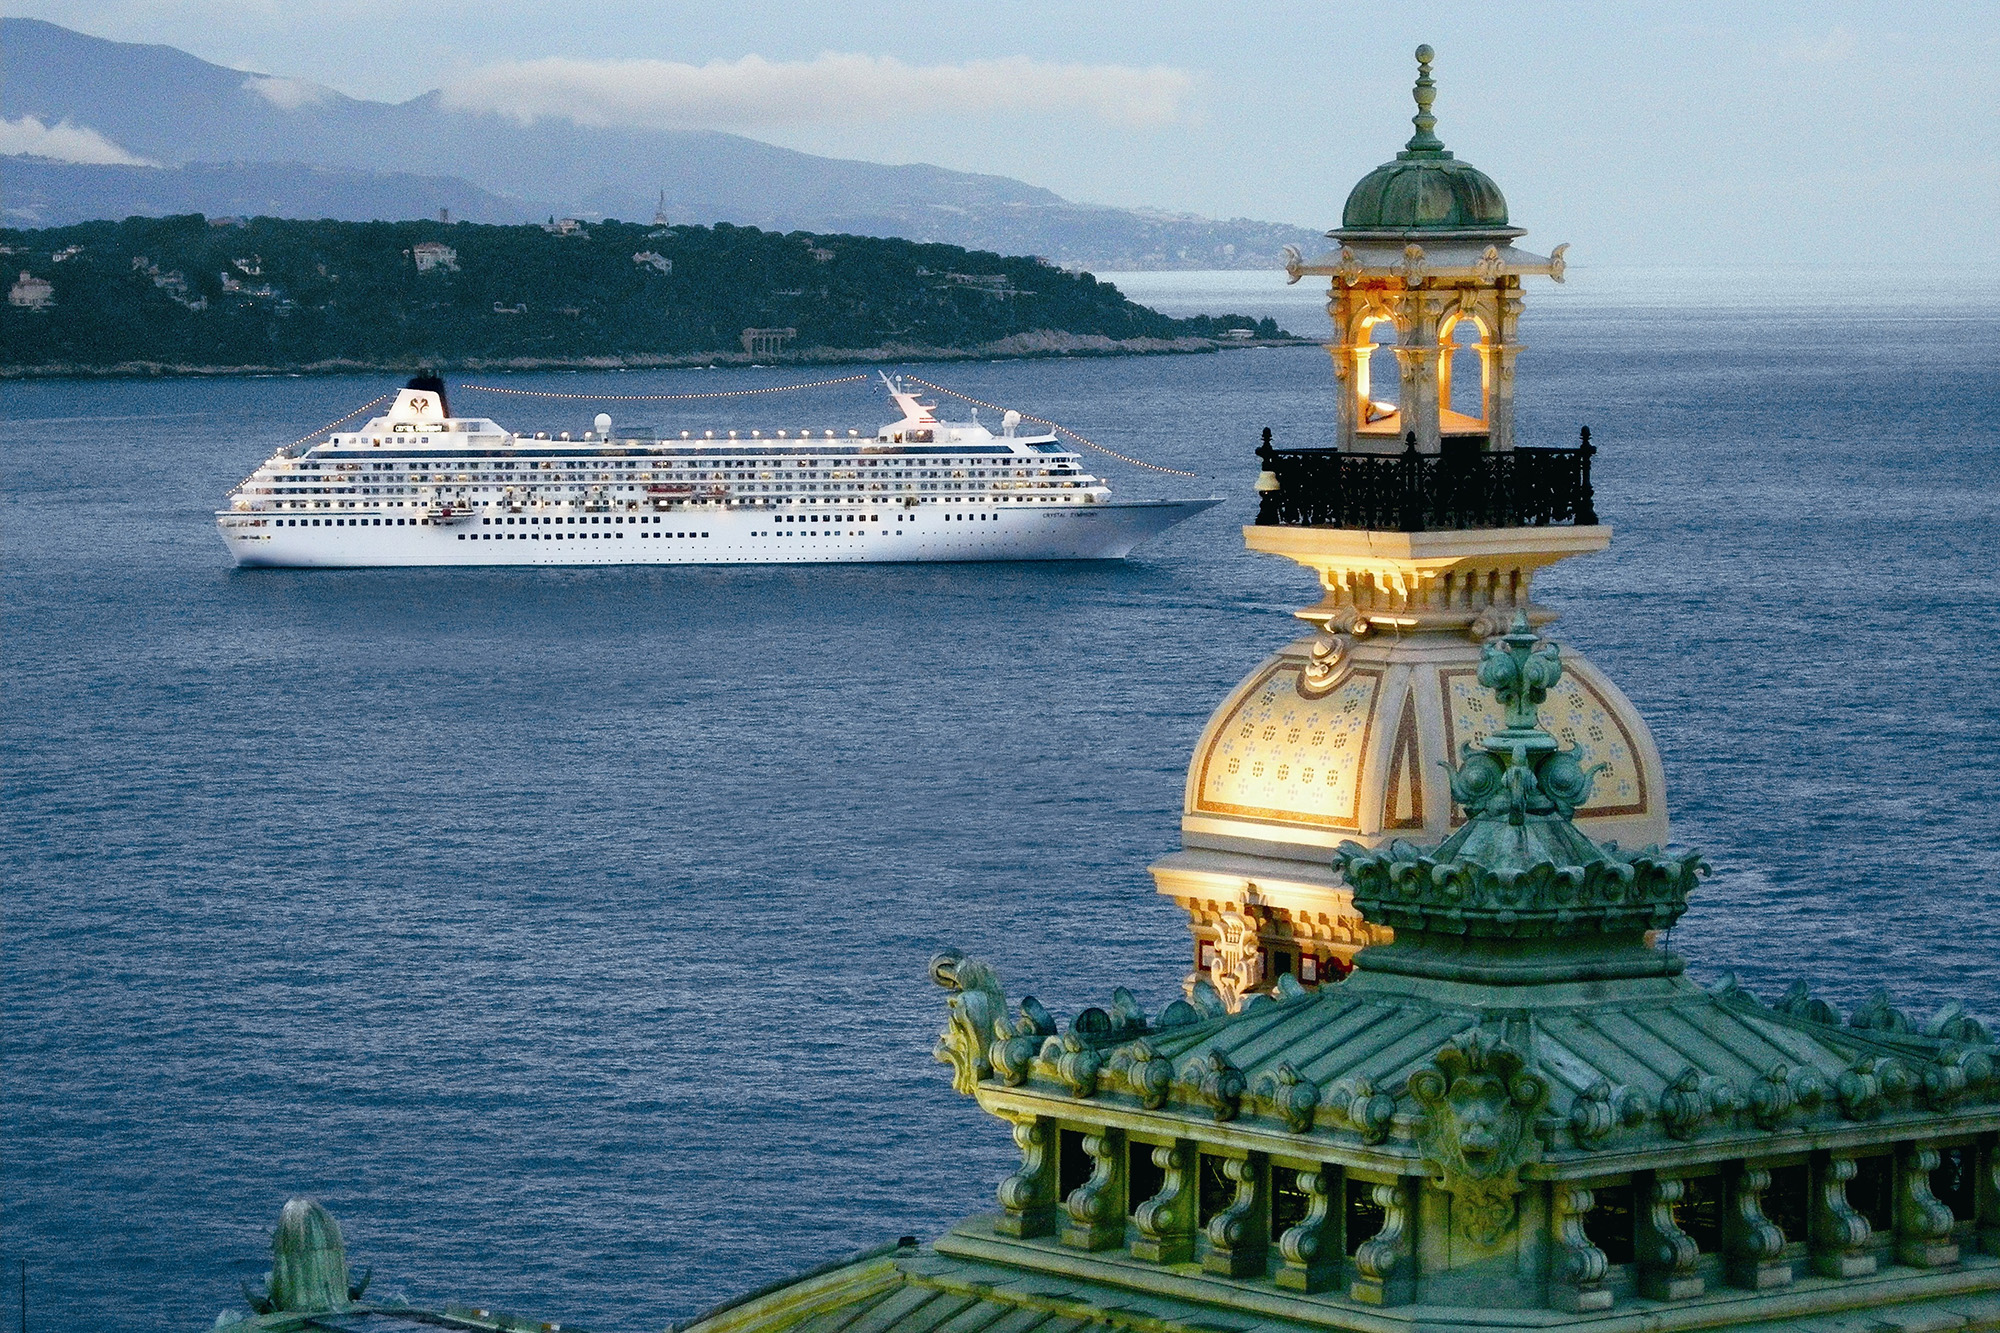 The Best Cruise Lines of 2017